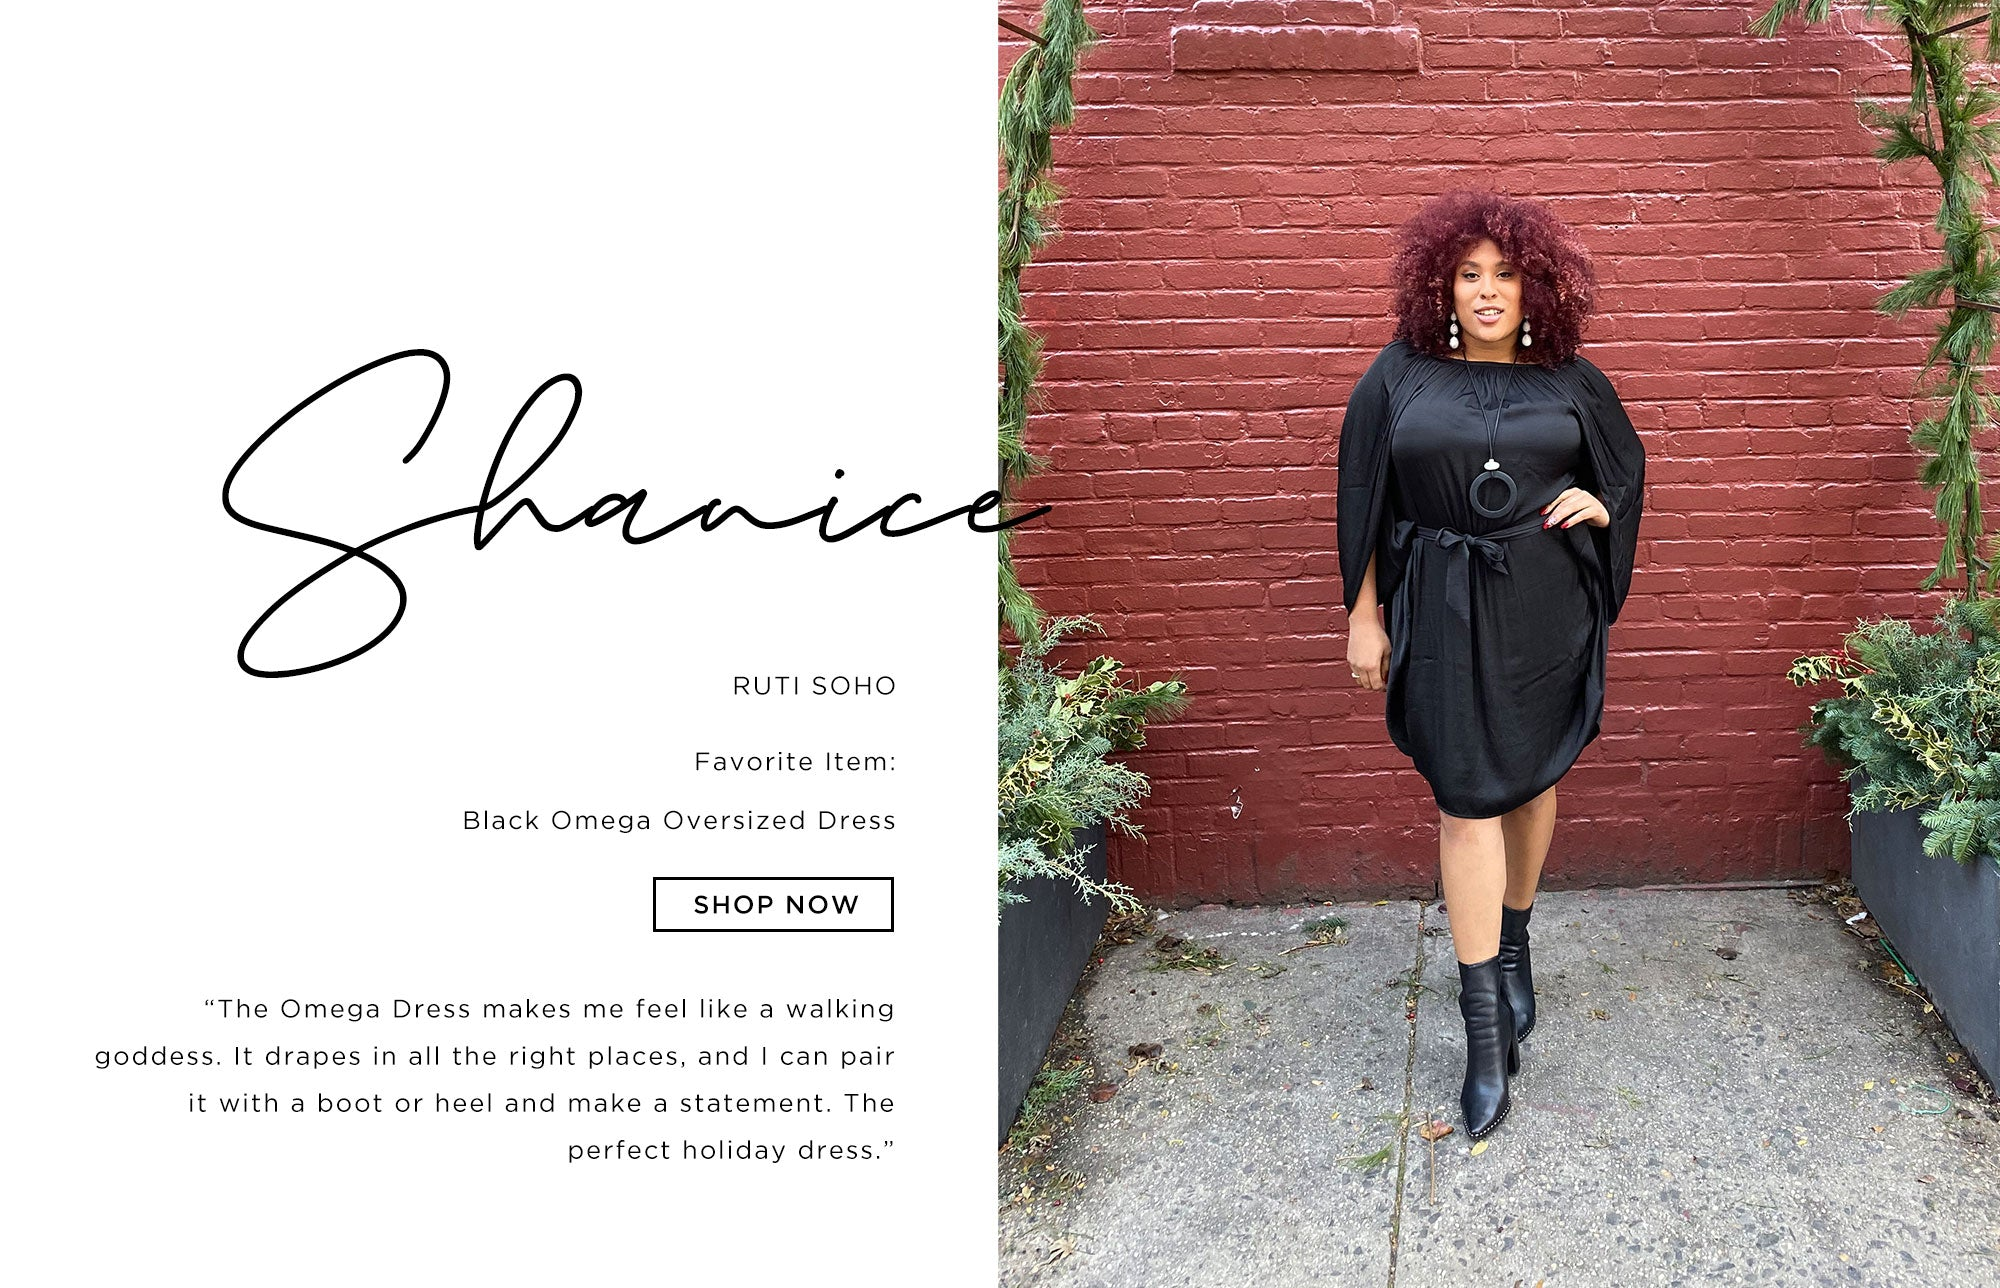 Shanice Ruti Soho   The Omega dress makes me feel like a walking goddess. It drapes in all the right places, and I can pair it with a boot or heel and make a statement. The perfect holiday dress.